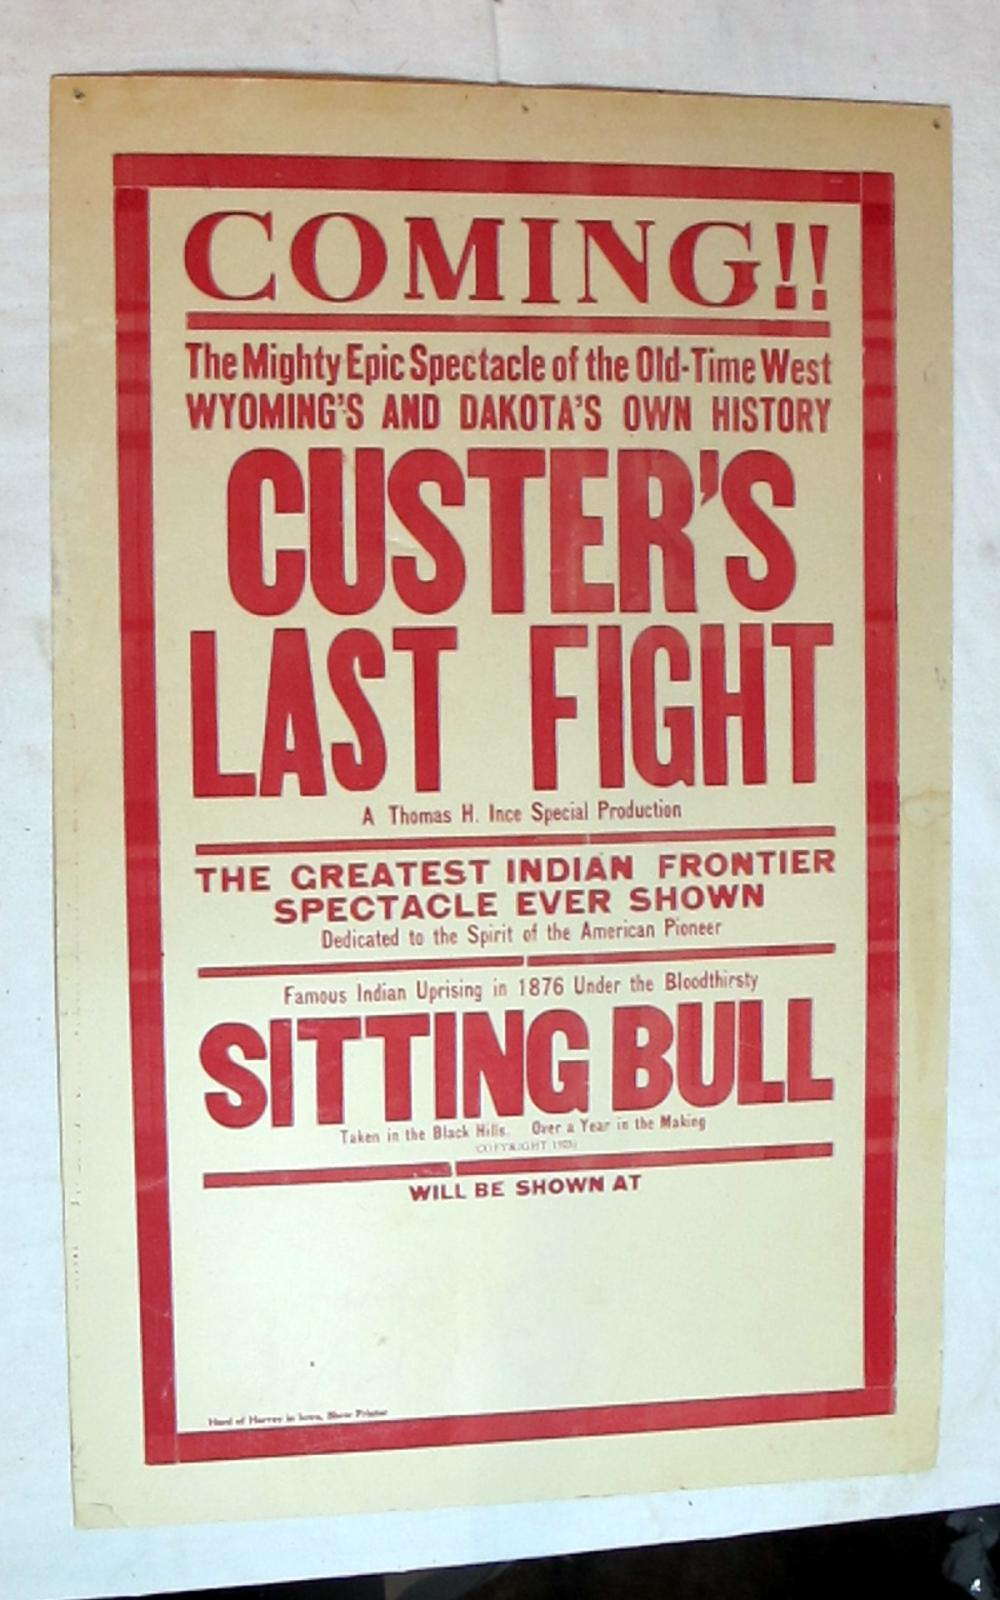 ORIGINAL 1925 CUSTERS LAST FIGHT MOVIE POSTER BROADSIDE SIGN SITTING BULL  14 X 22